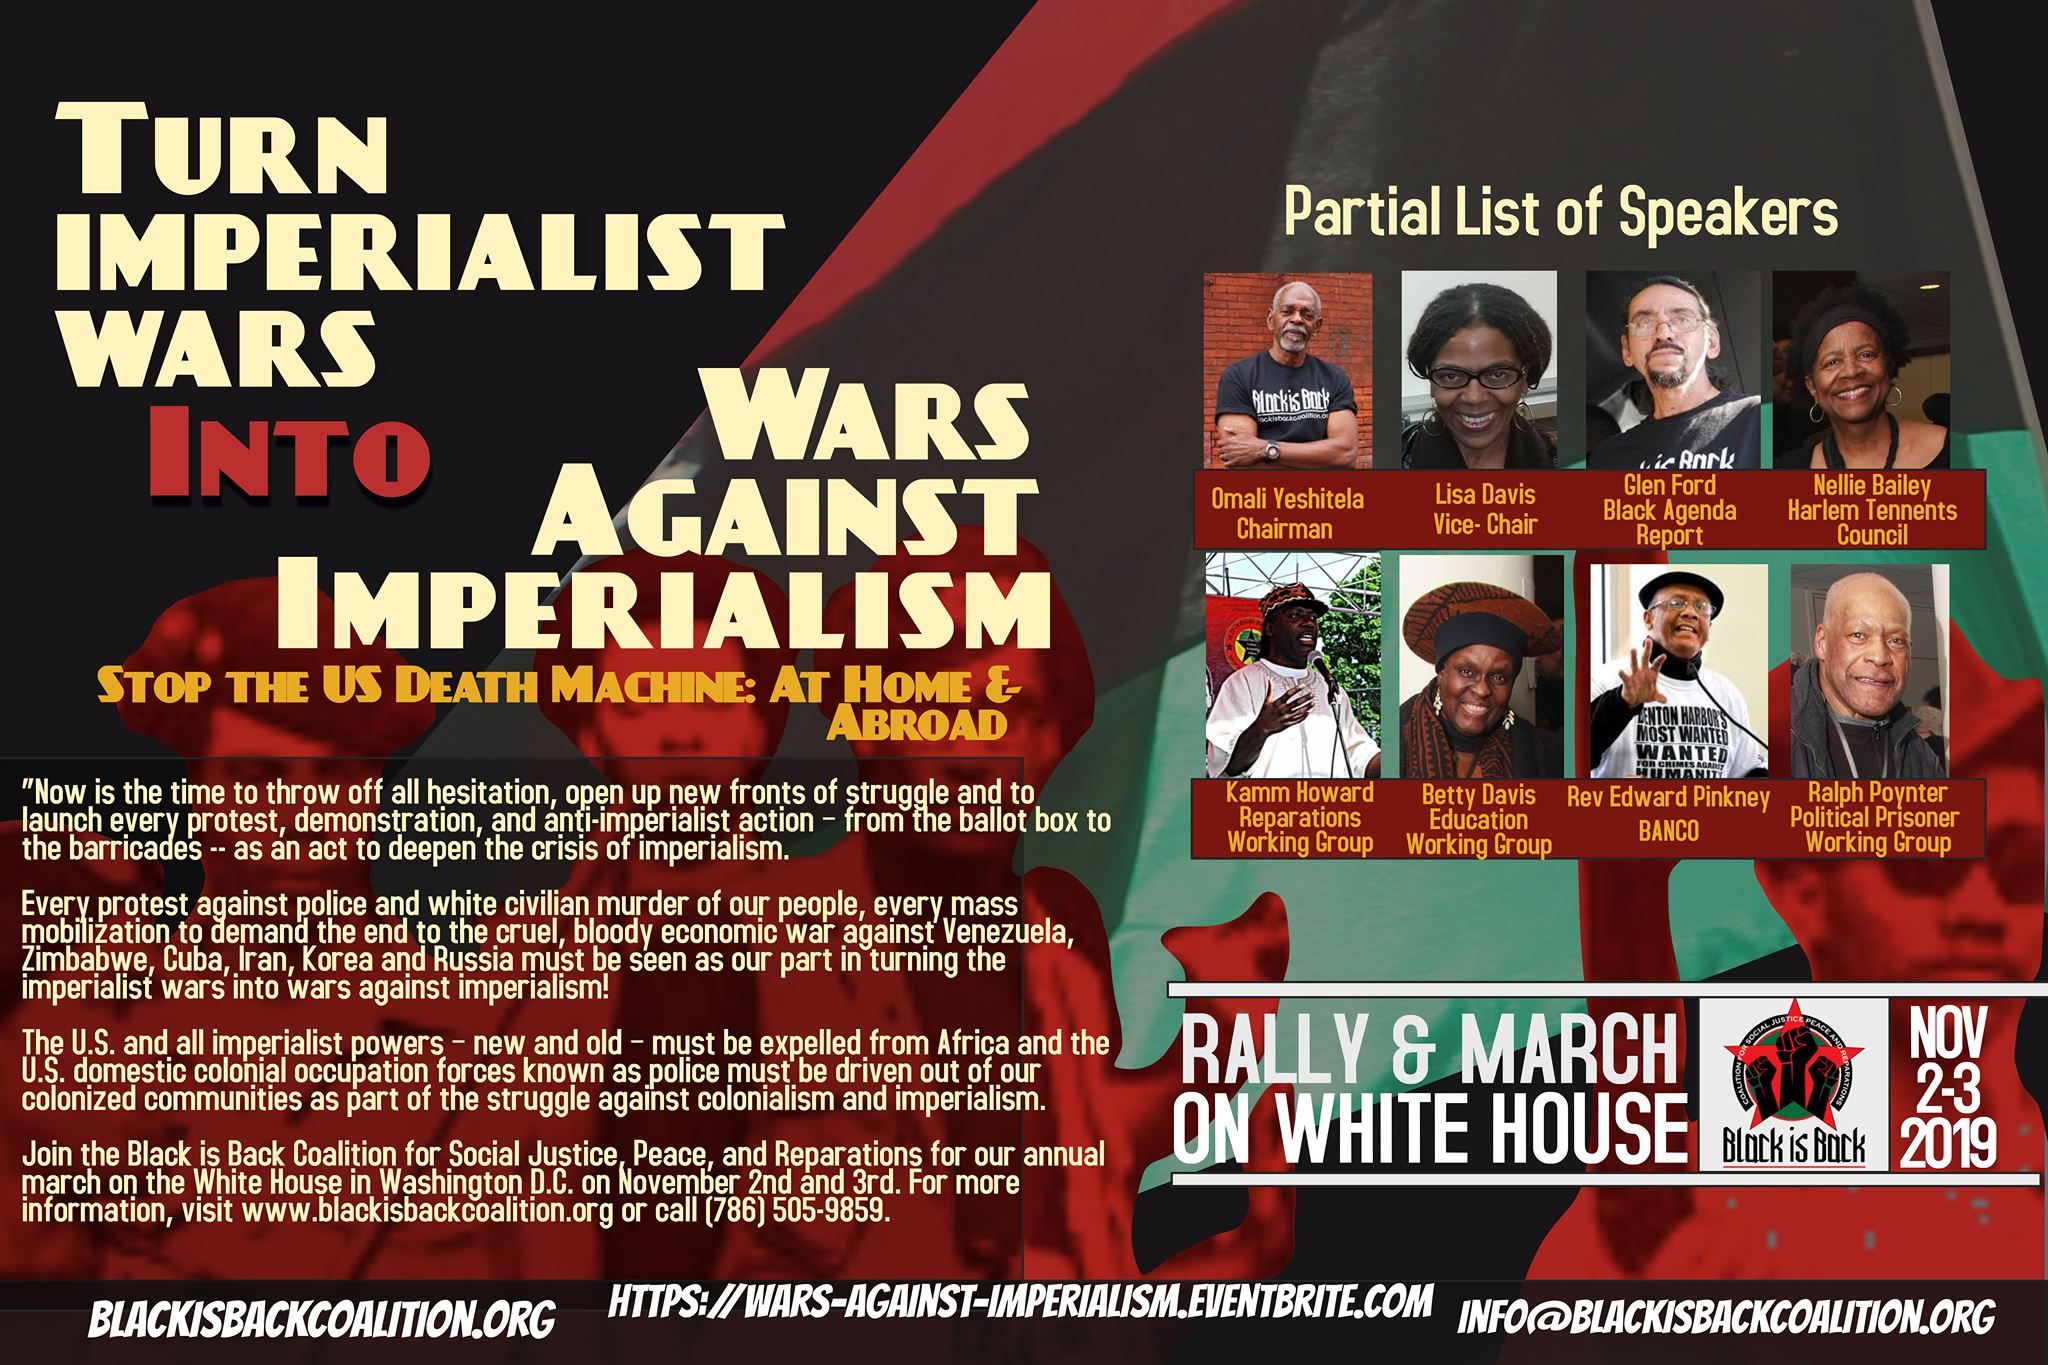 March On The White House: Turn Imperialist Wars Into Wars Against Imperialism